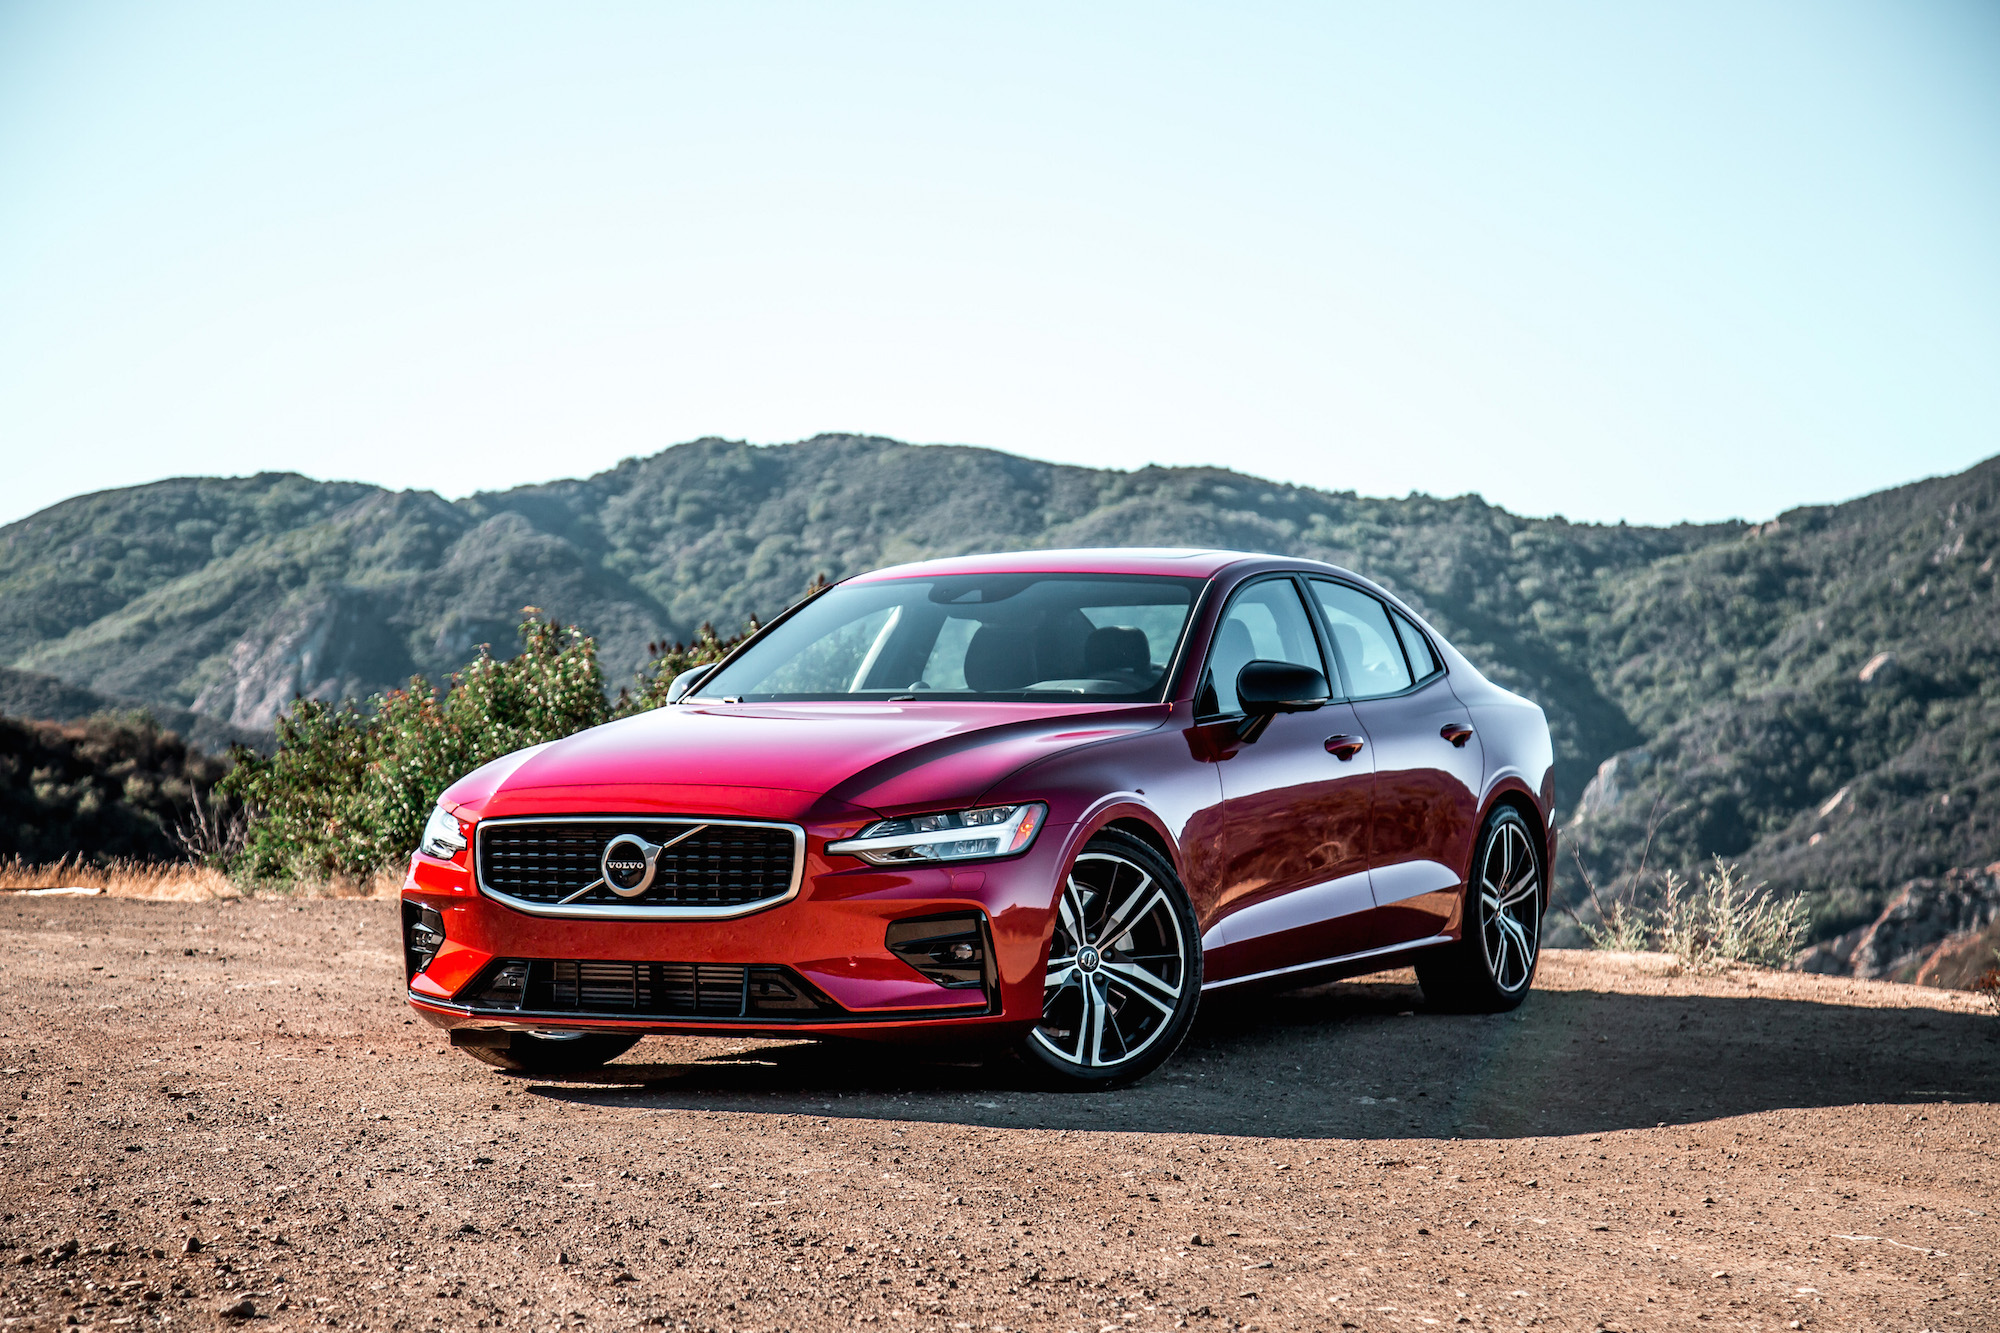 35 The 2020 Volvo S60 Polestar Price